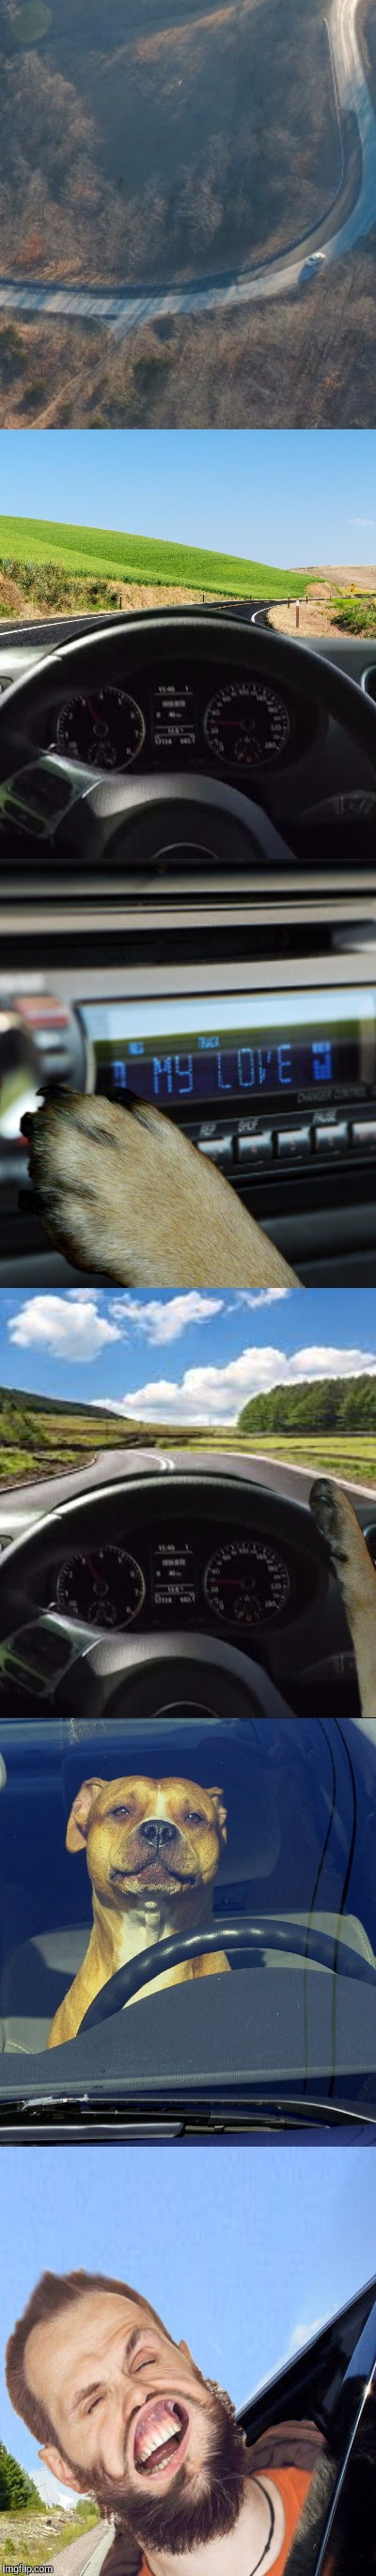 WANNA GO FOR A RIDE? | . | image tagged in dog week,drive,funny | made w/ Imgflip meme maker